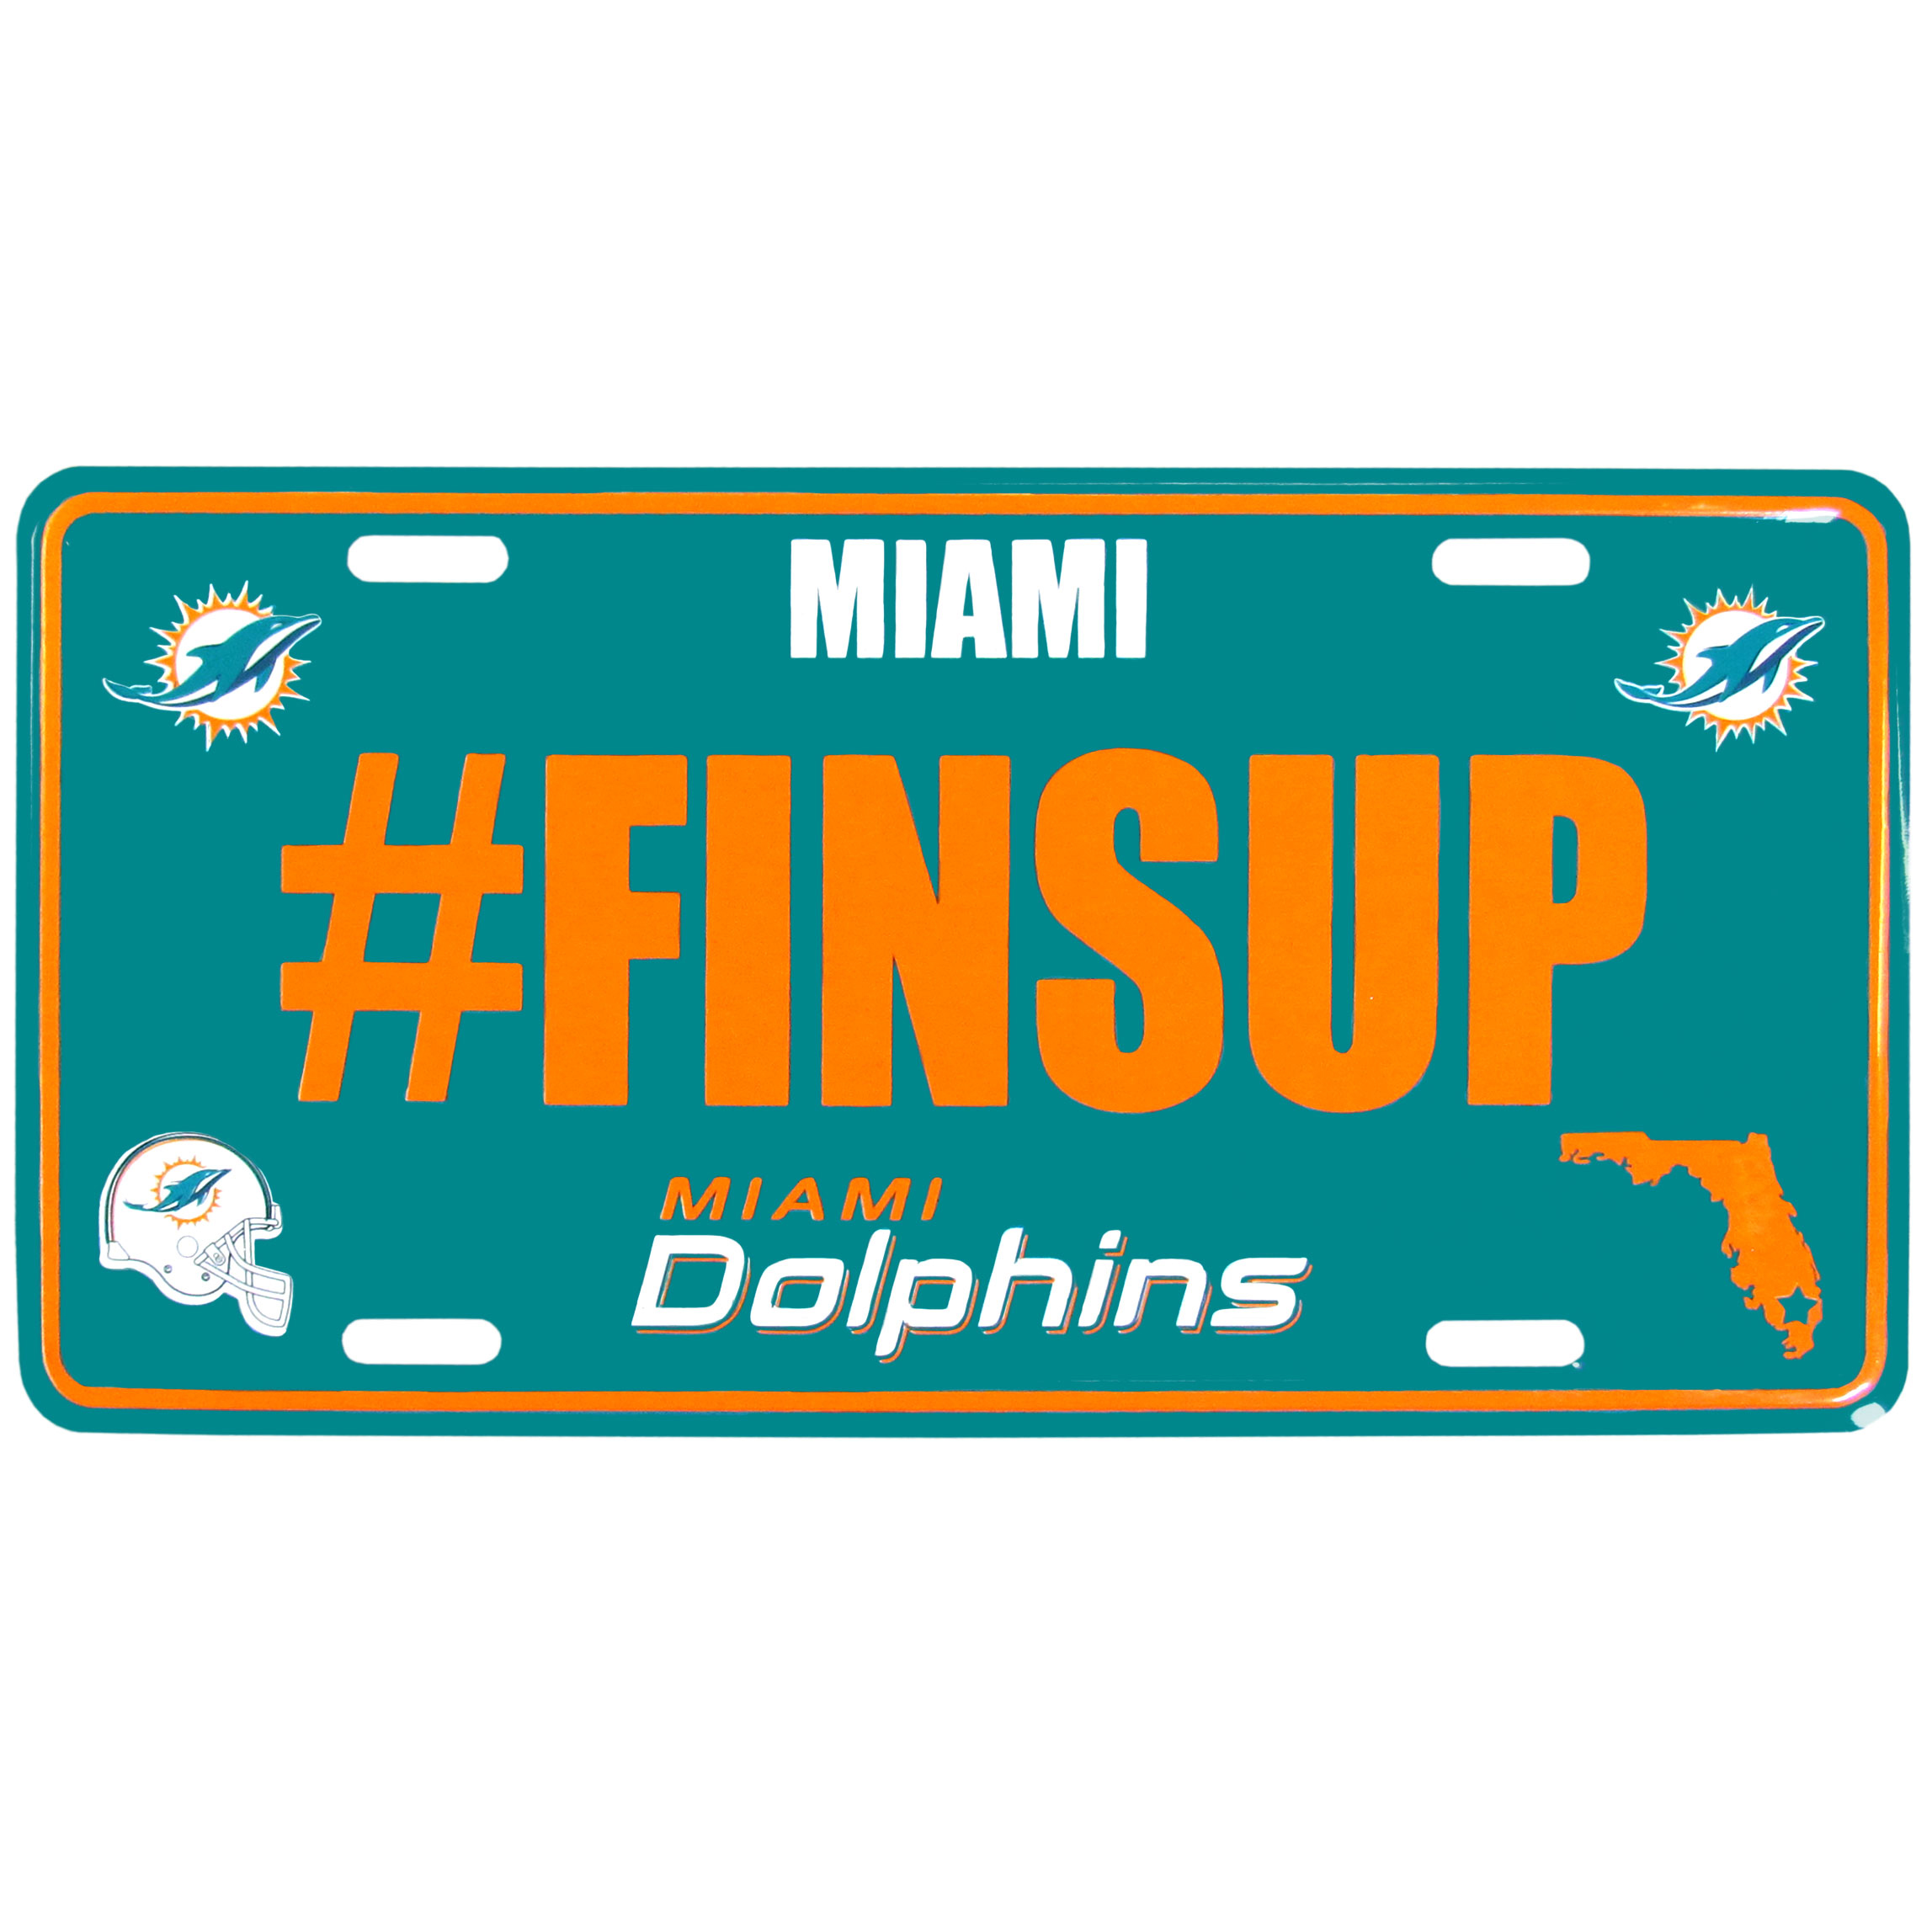 Miami Dolphins Hashtag License Plate - It's a hashtag world! Celebrate the Miami Dolphins with this stamped aluminum license plate with the most popular team hashtag! This bright license plate will look great on your vehicle or mounted in your fan cave.